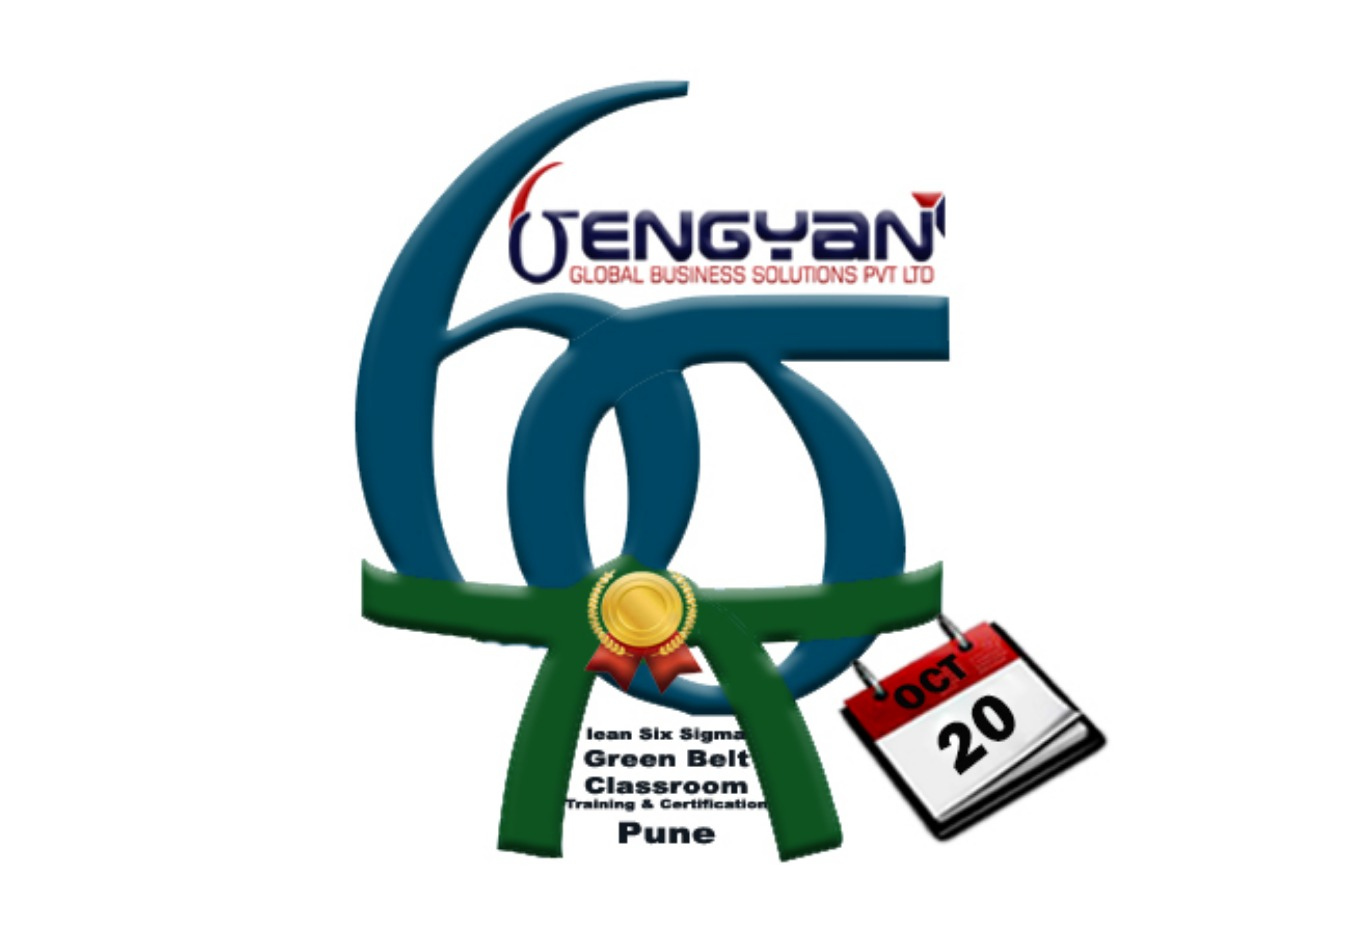 Lean Six Sigma Green Belt Classroom Training At Pune Tickets By